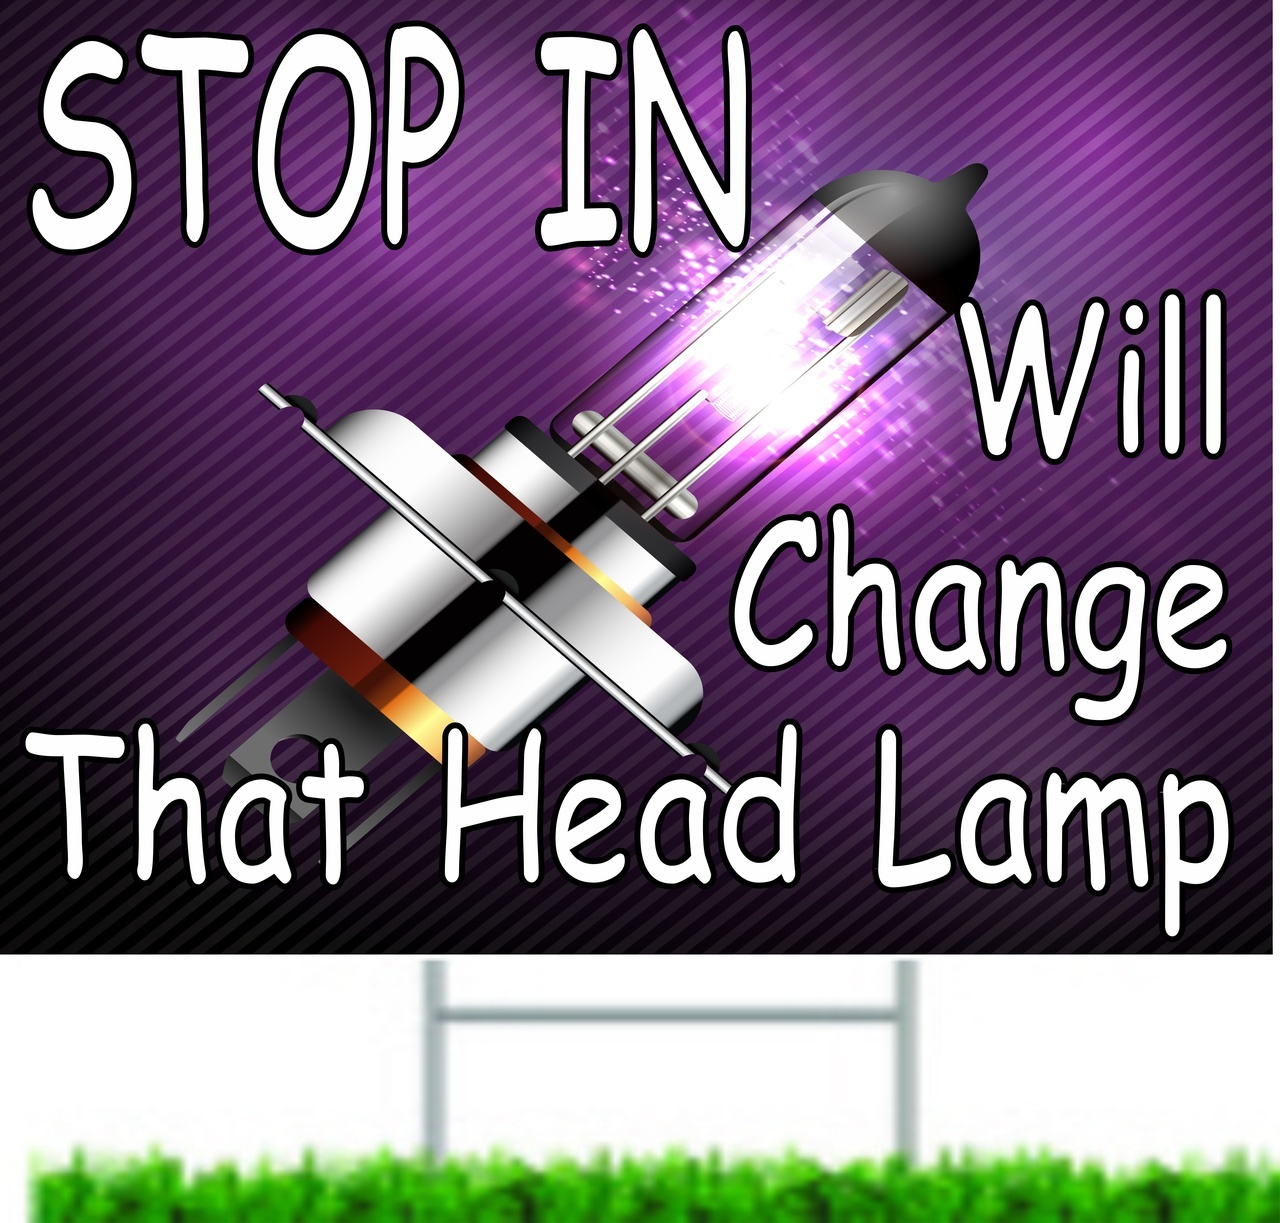 Stop In Will Change That Head Lamp Auto Repair Yard Signs.